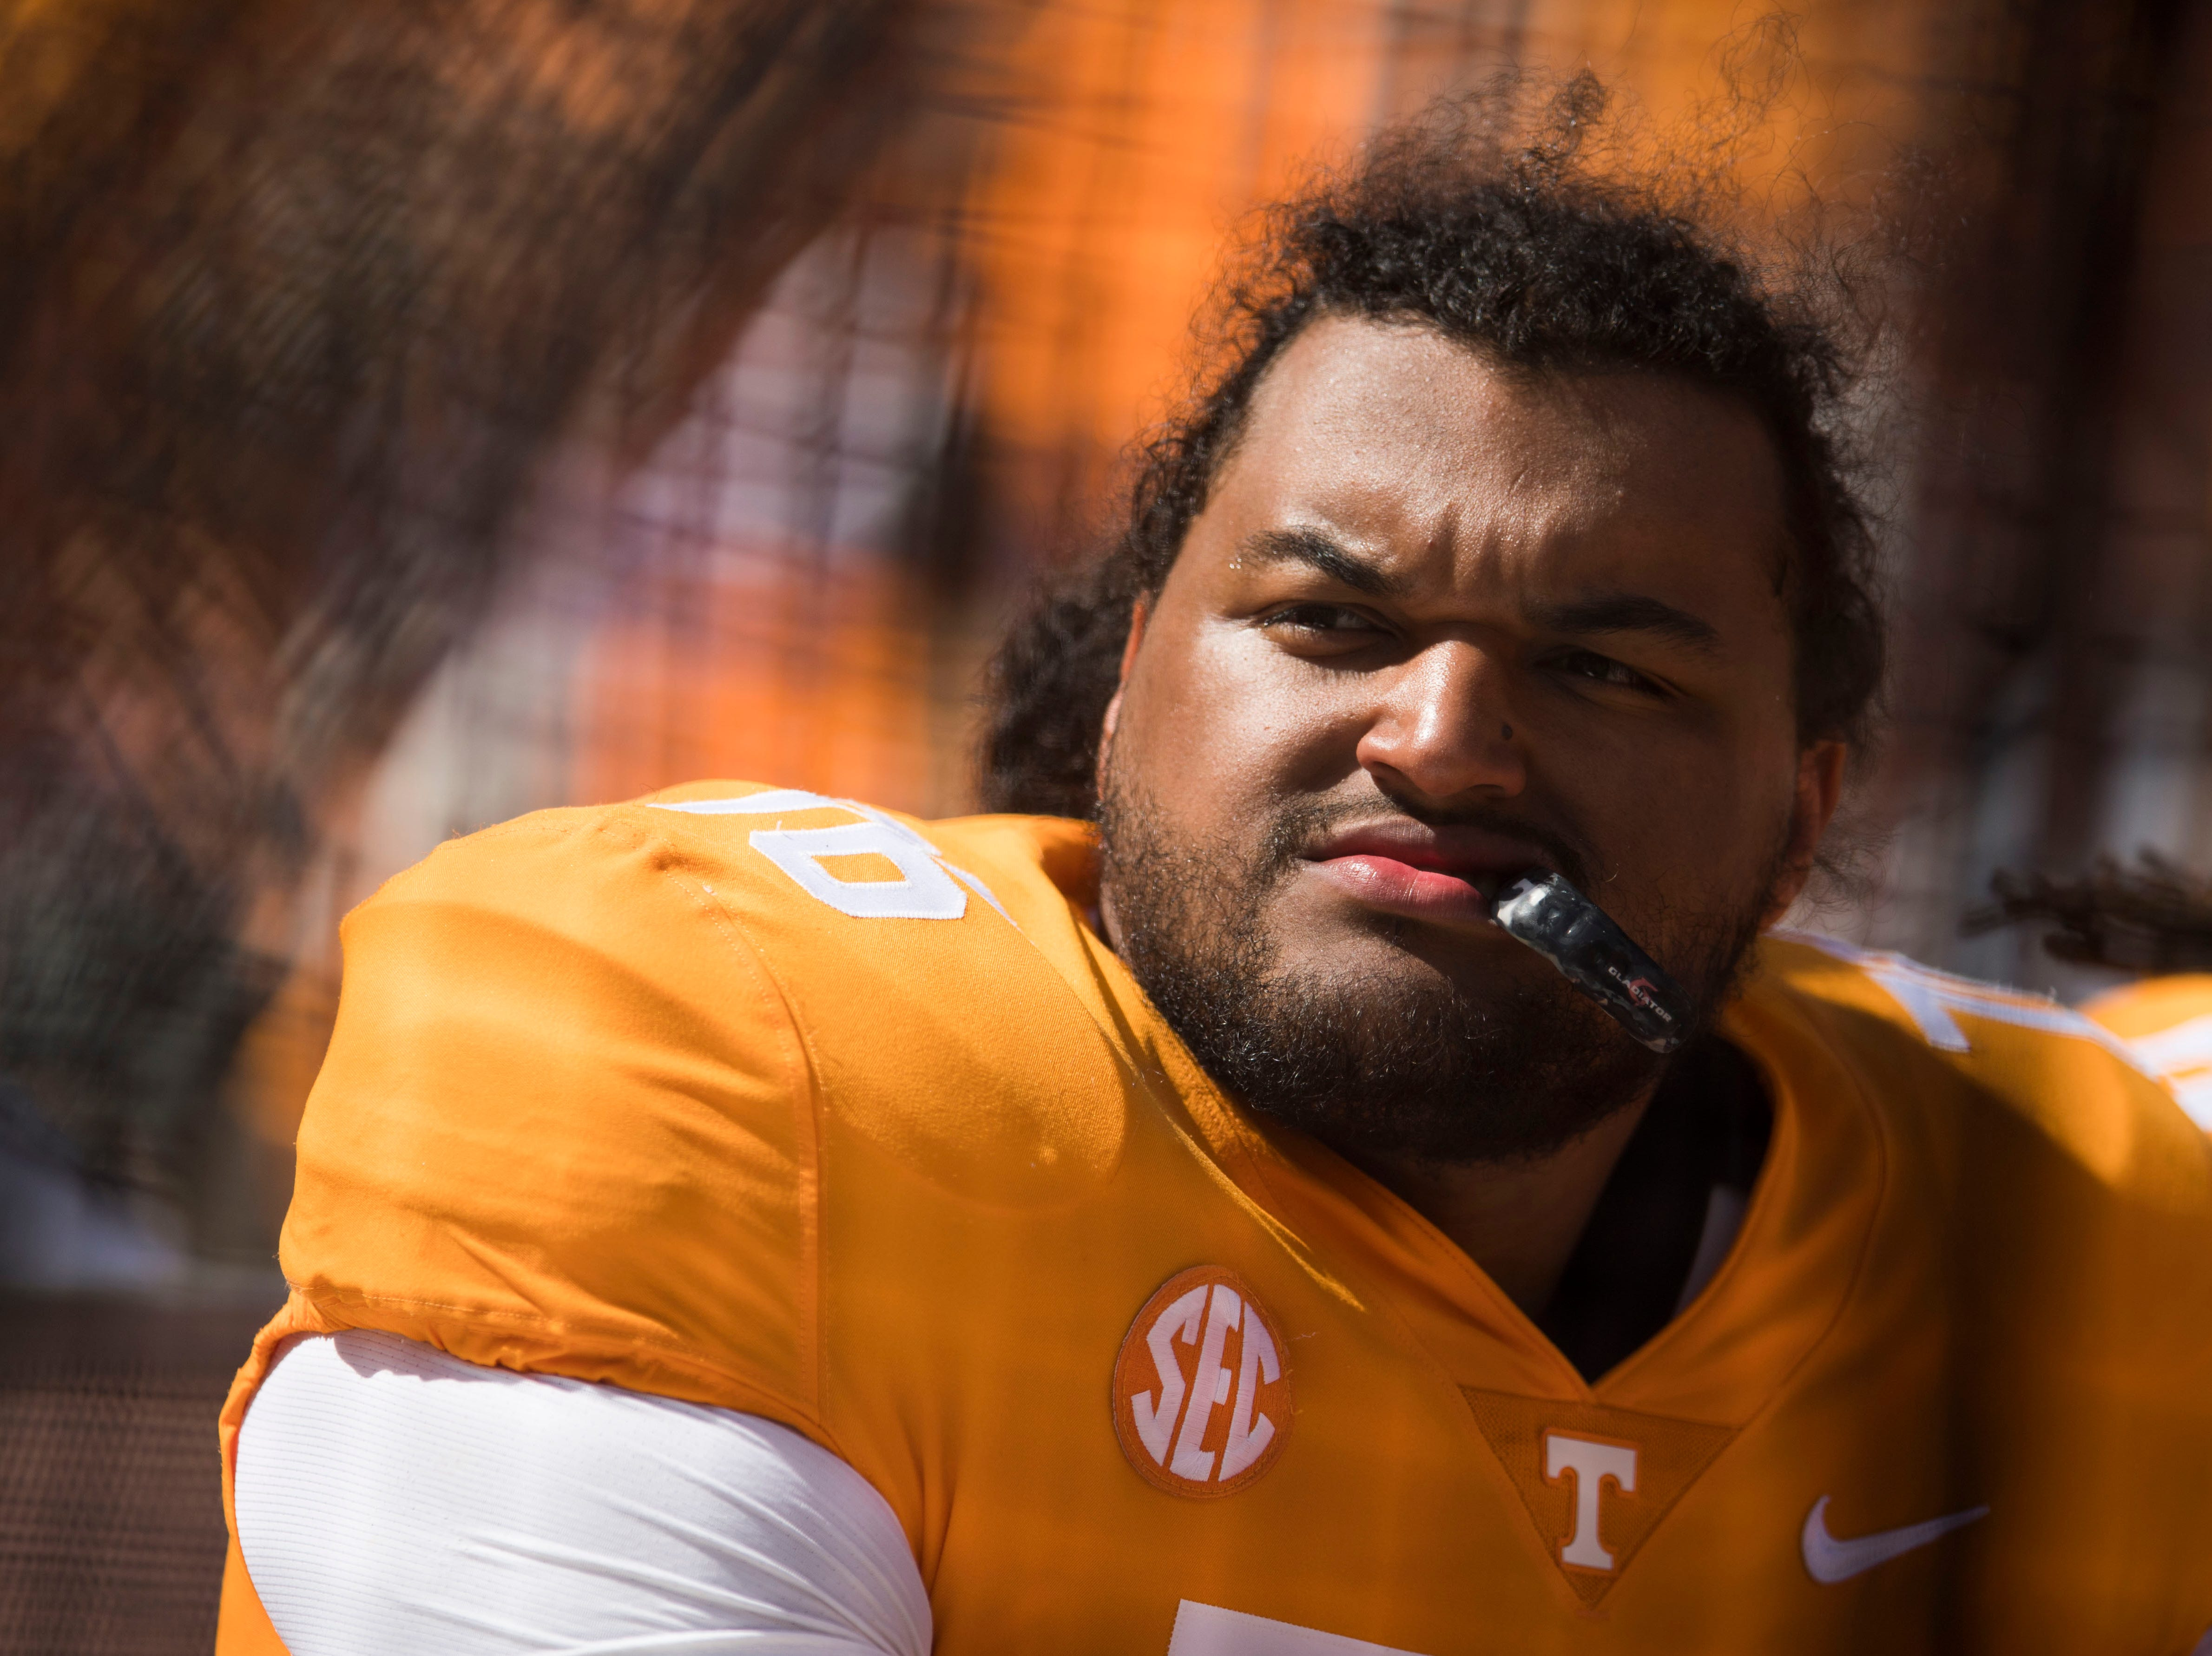 Tennessee offensive lineman Chance Hall (76) sits on the bench during the second half of a game between UT and UTEP in Neyland Stadium Sept. 15, 2018.